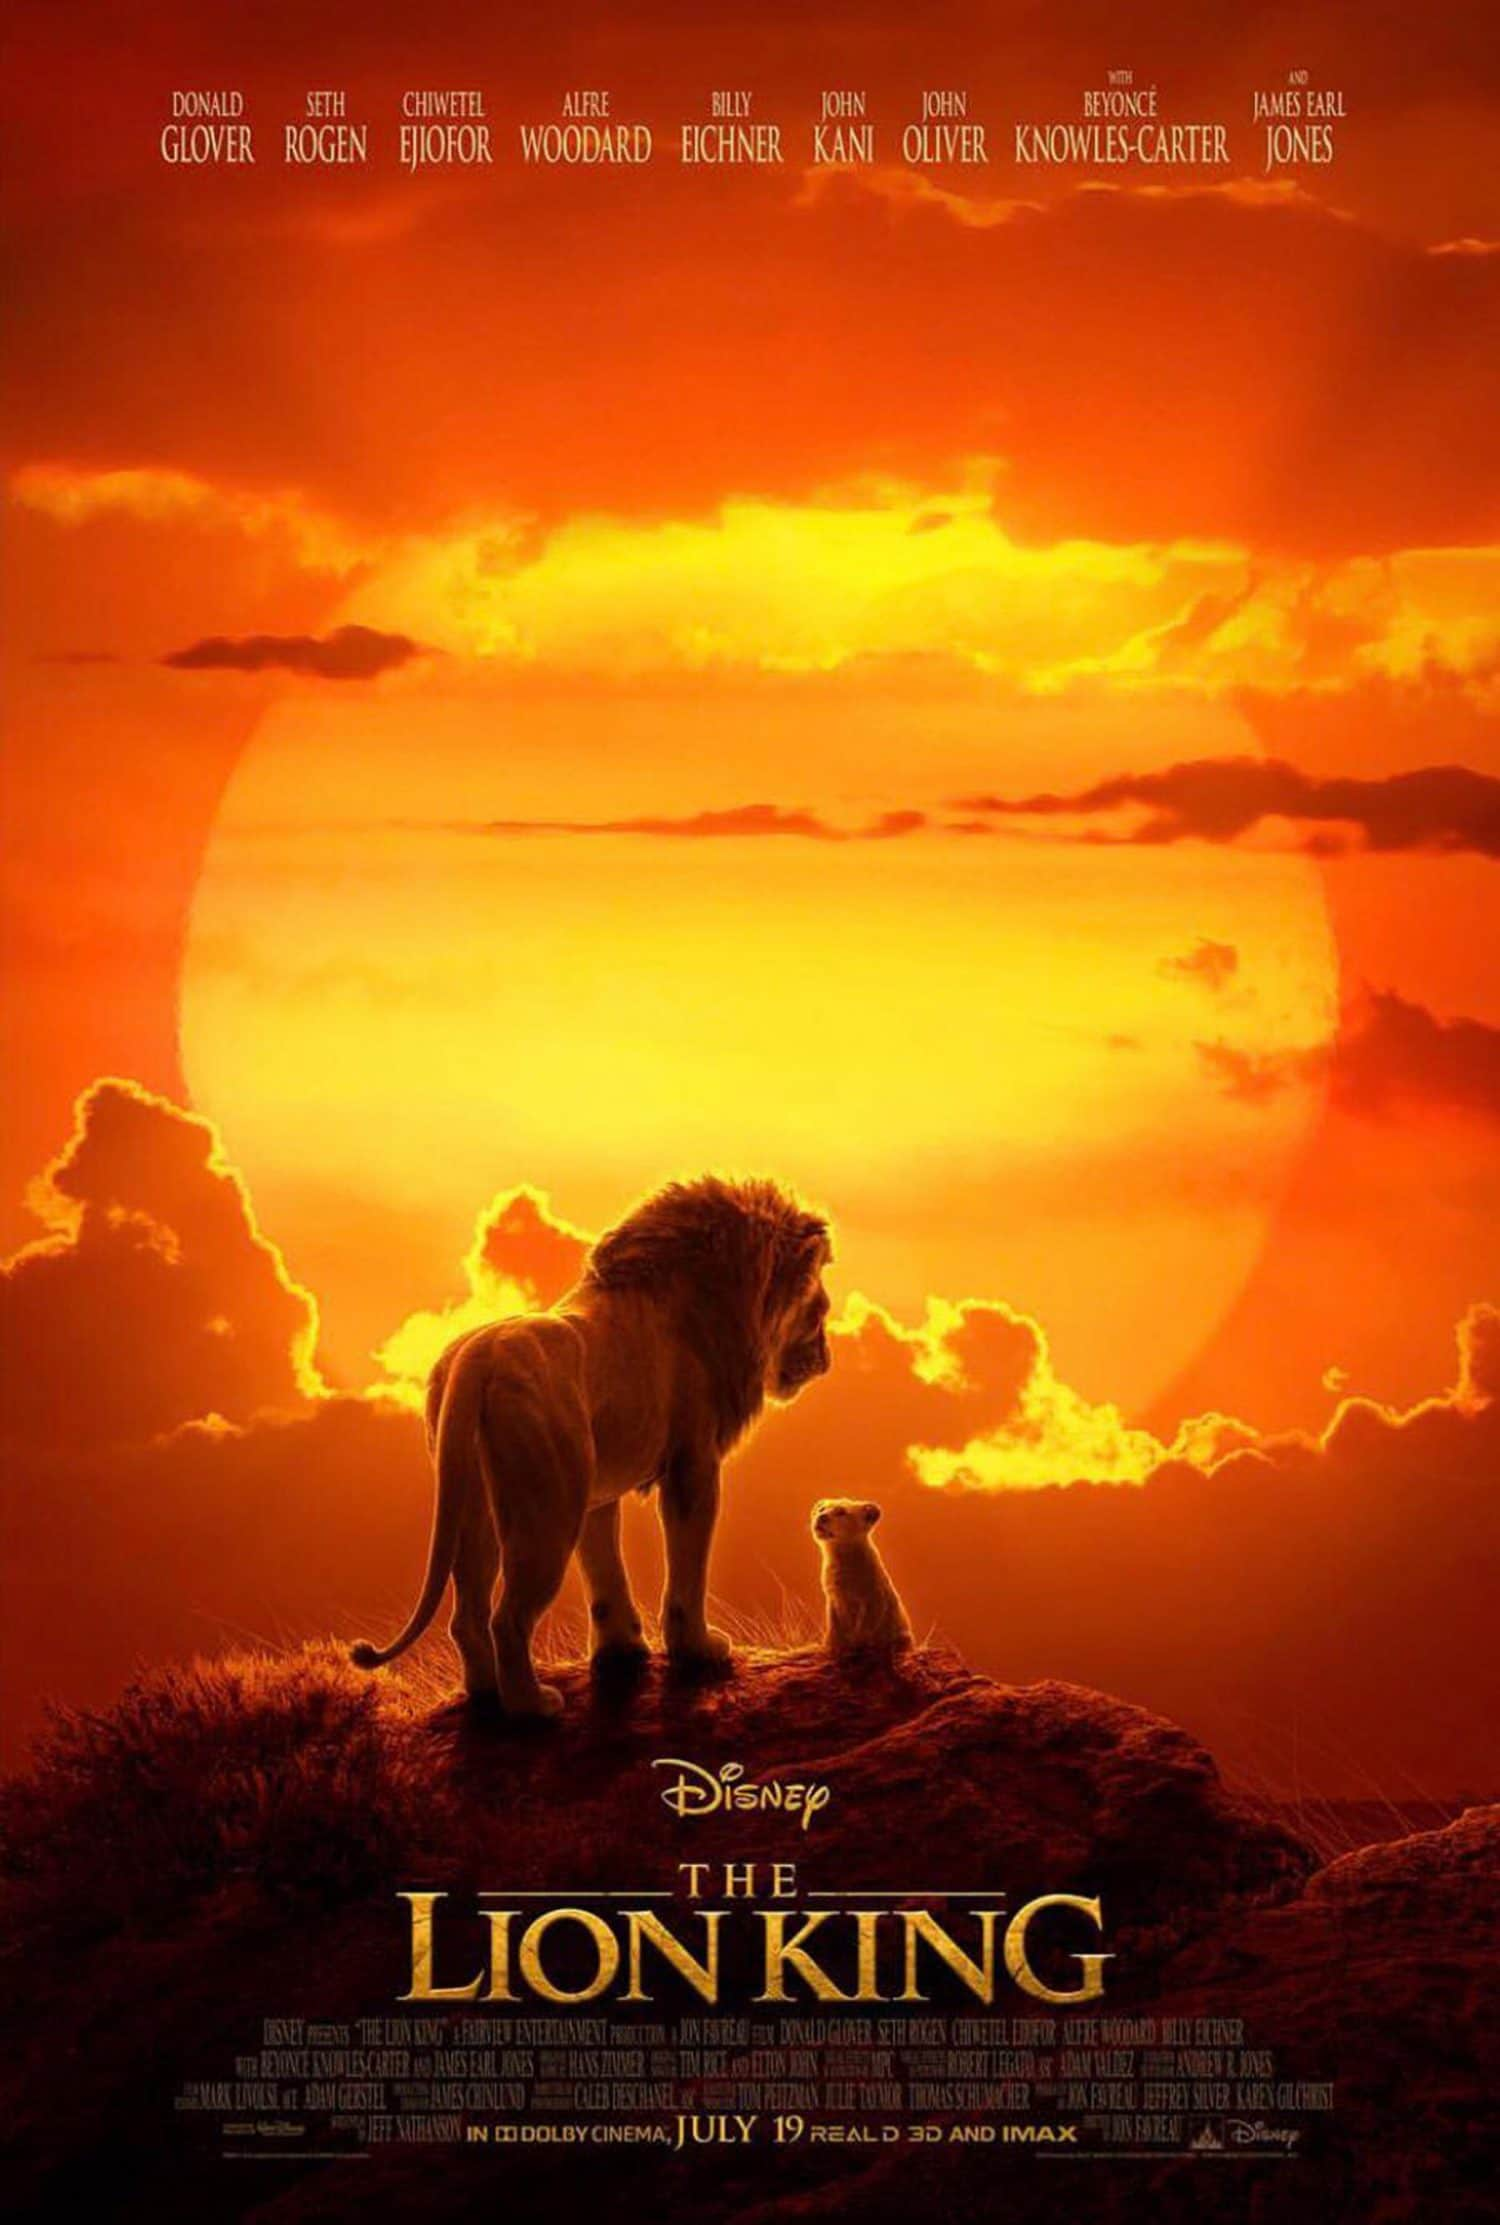 The Lion King live action movie is on the way from Disney in 2019.